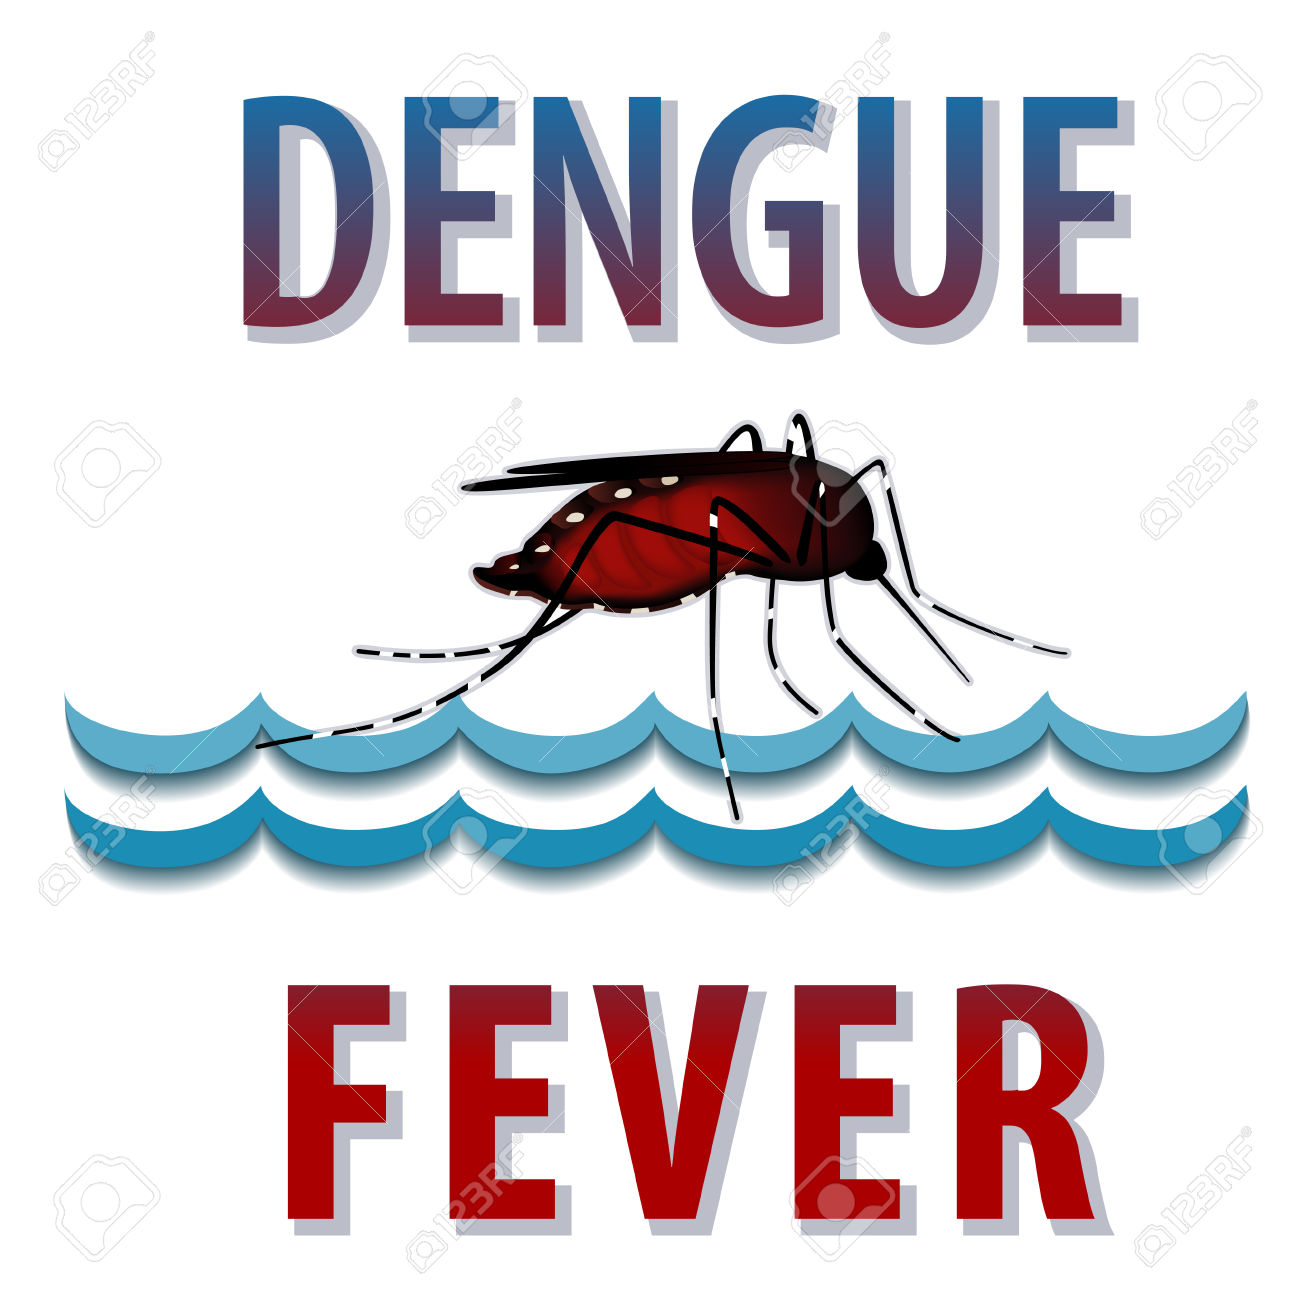 Dengue Fever Mosquito, Infectious Virus Disease, Standing Water.